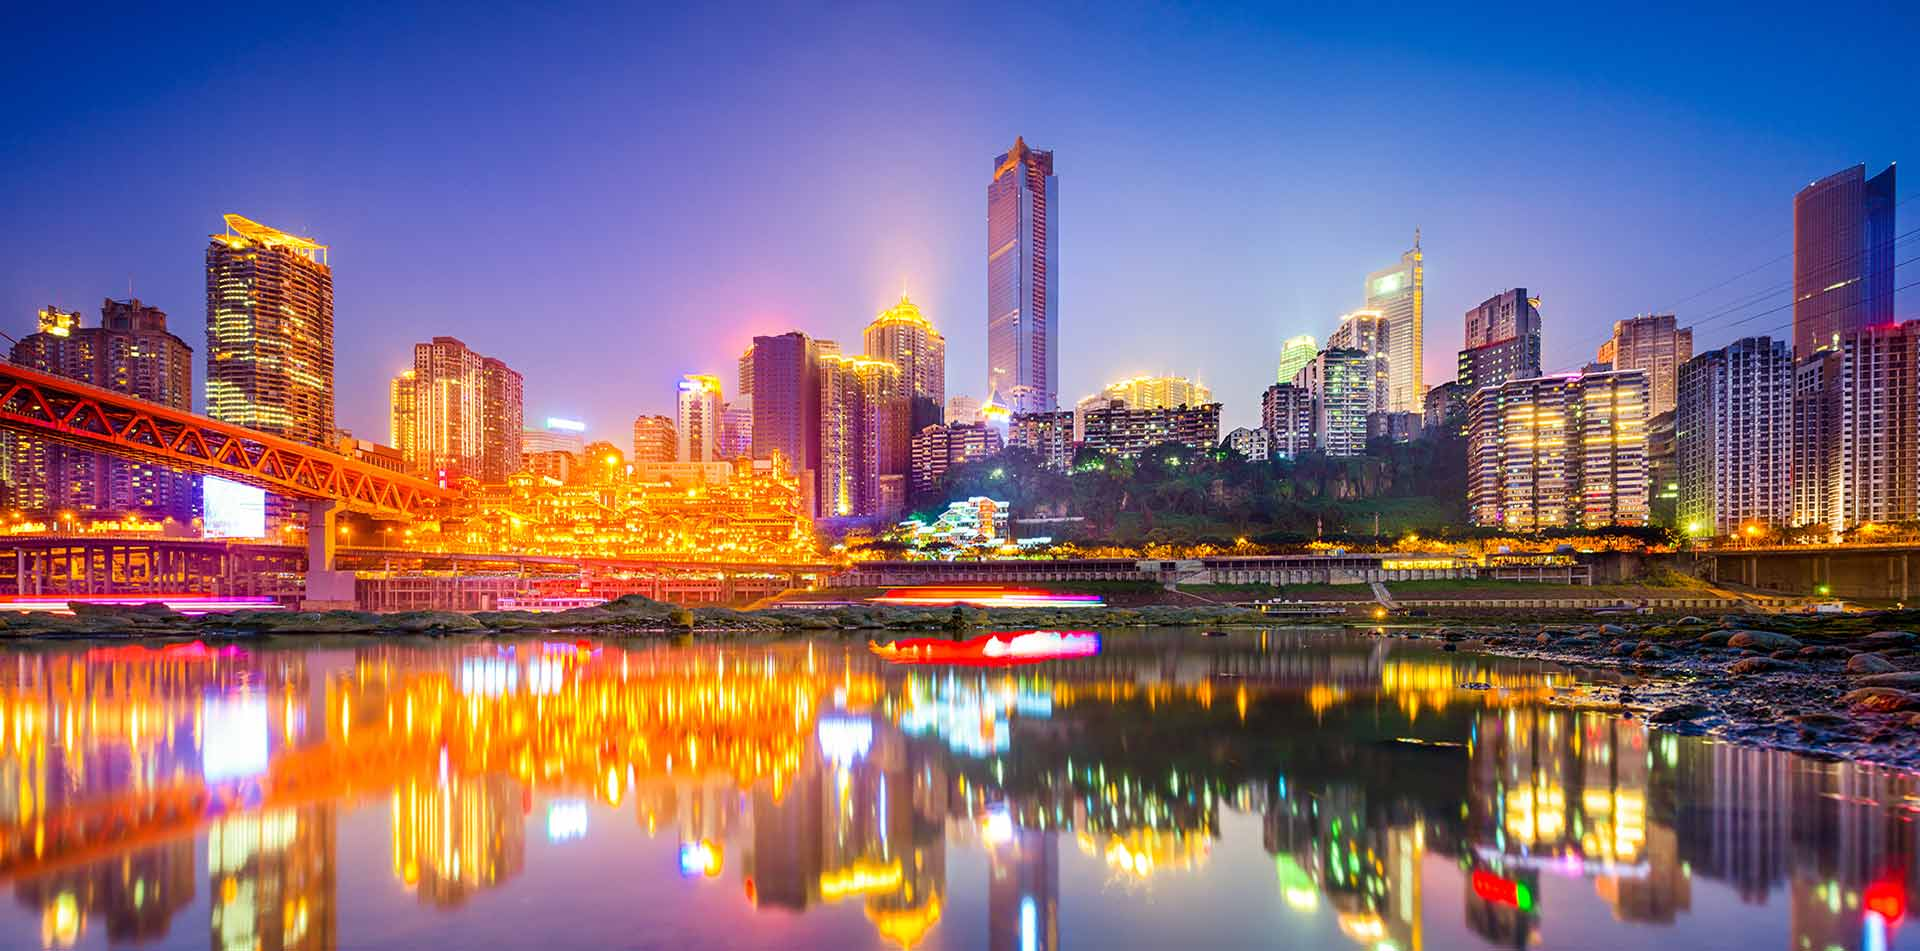 Asia China Yangtze and Jialing rivers in Chongqing with cityscape at night - luxury vacation destinations